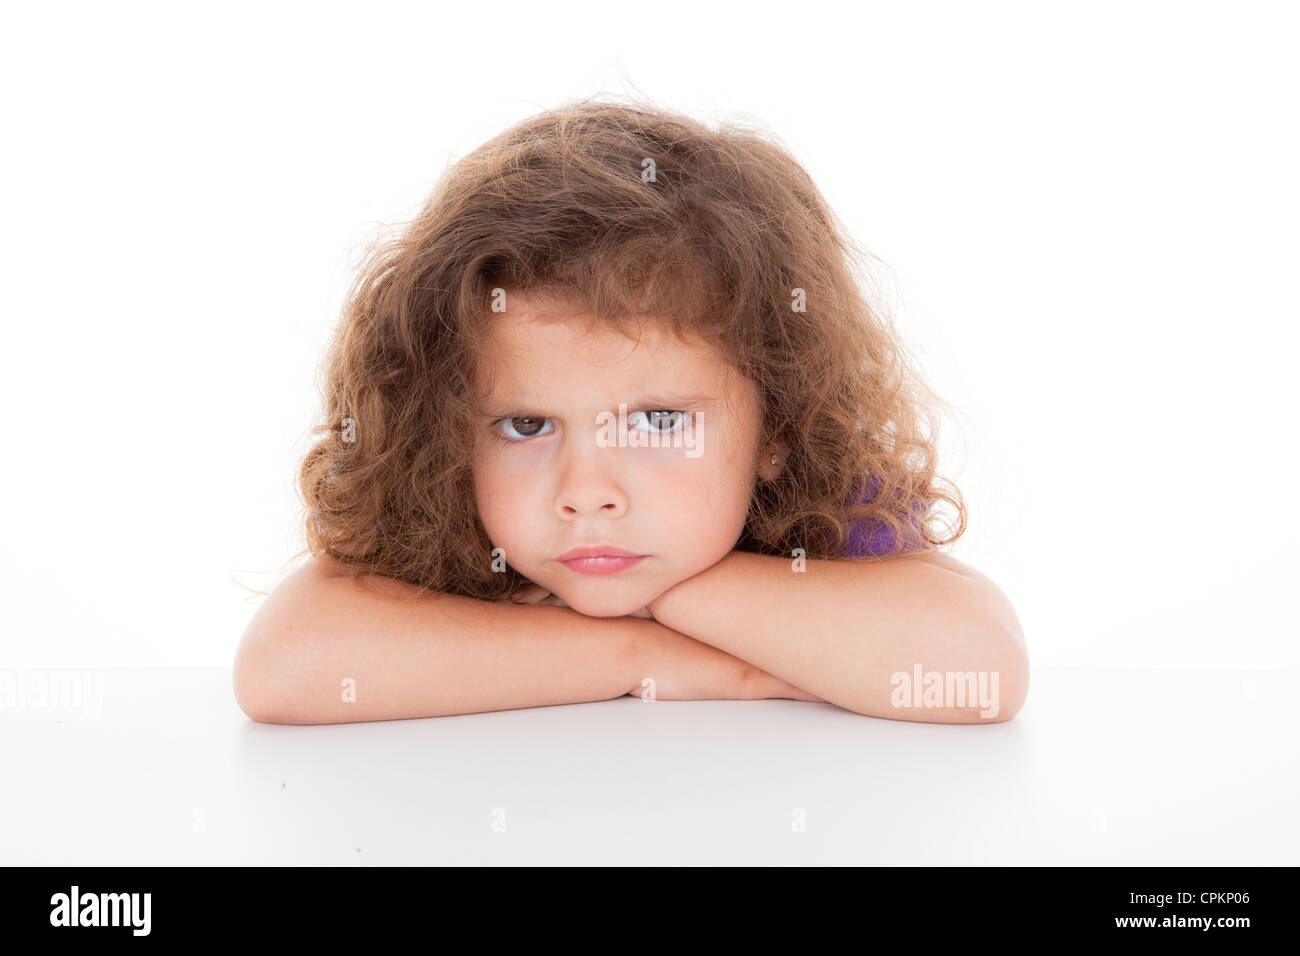 sulky angry young girl child, sulking and pouting, - Stock Image